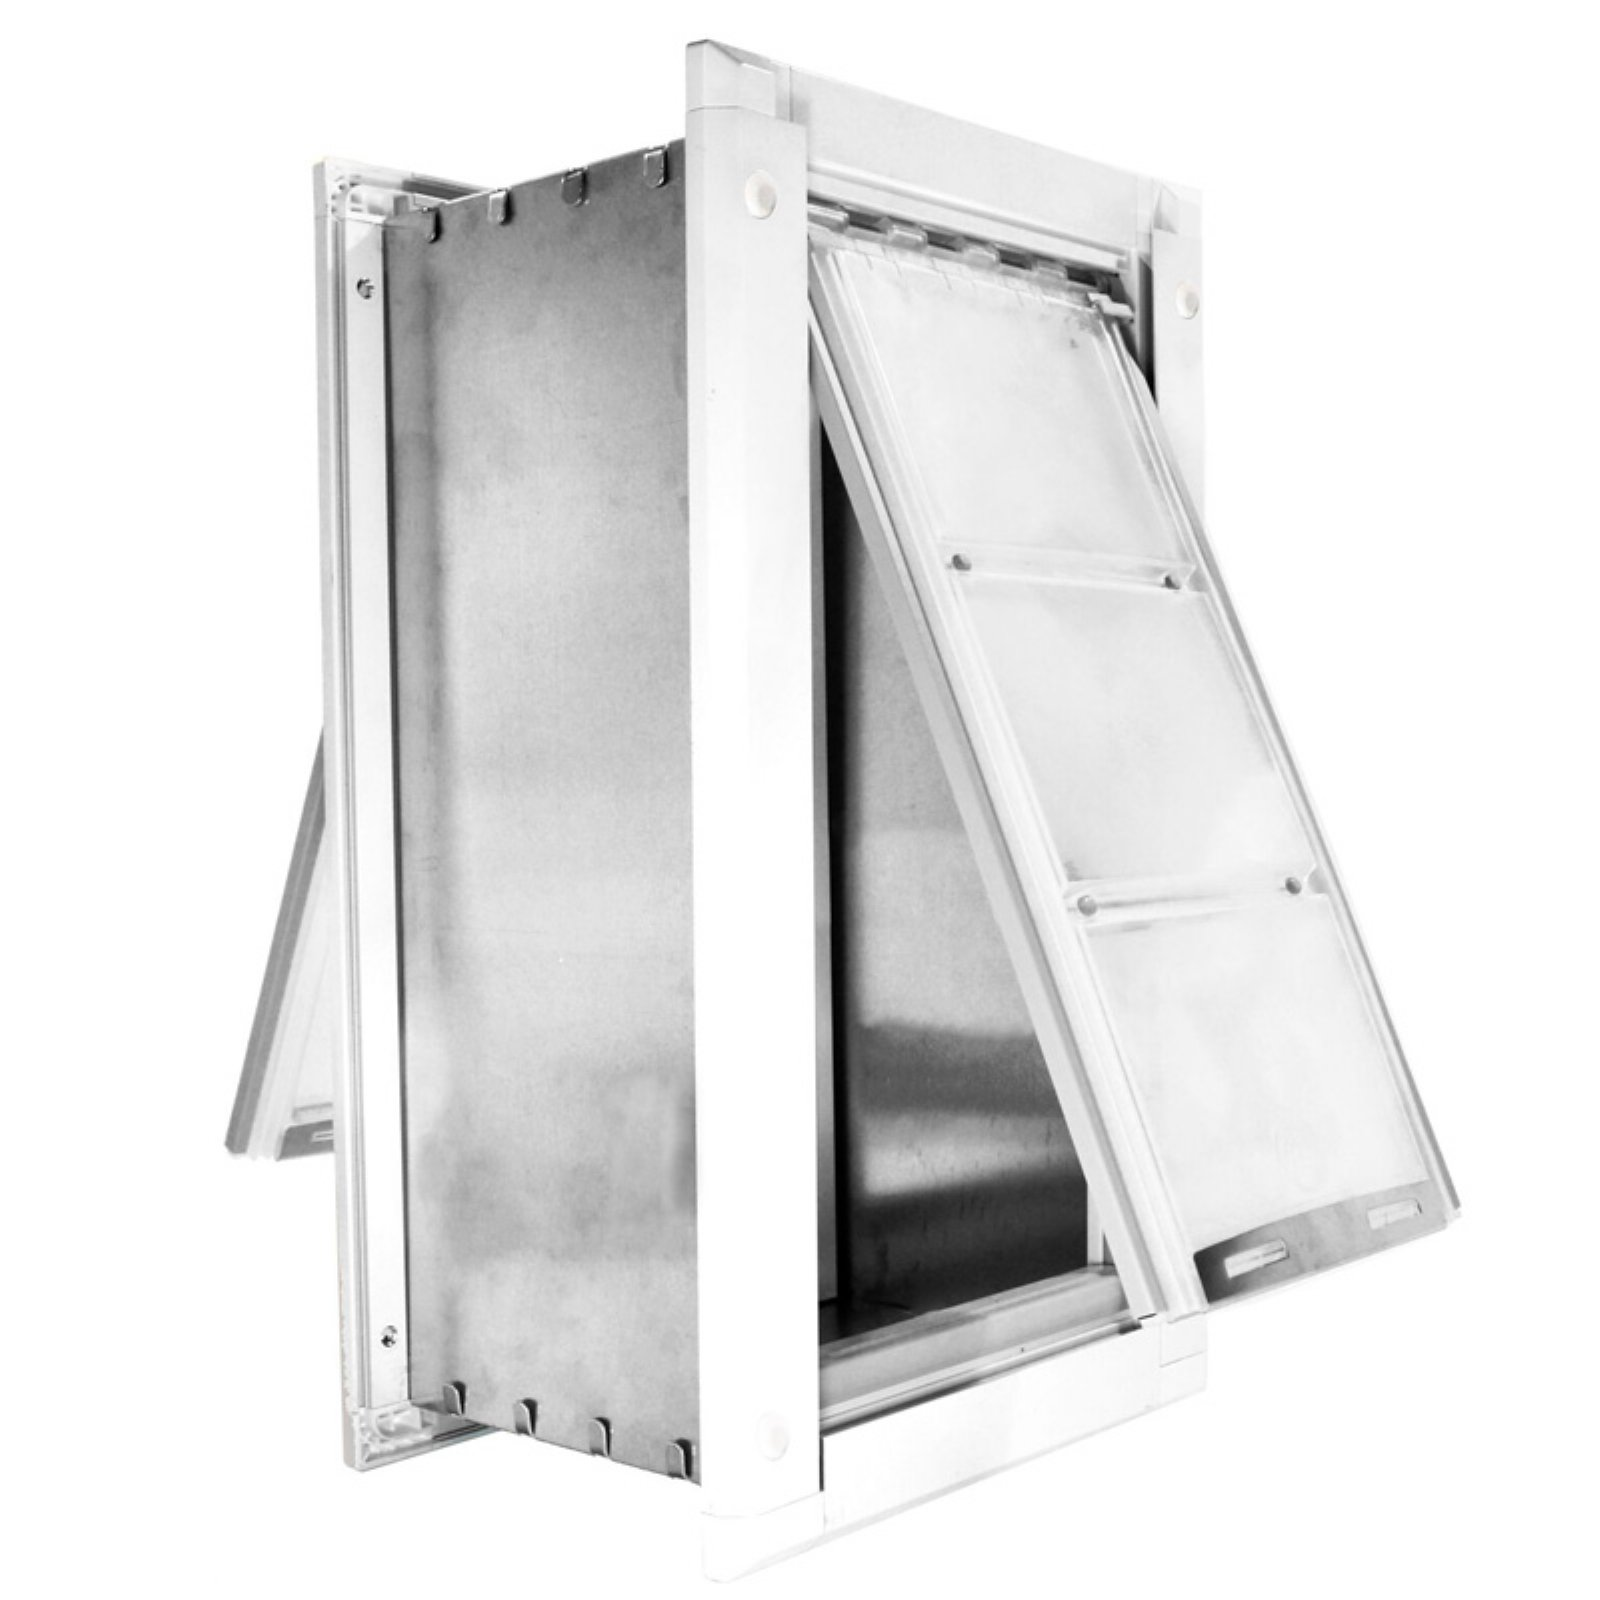 Endura Flap Pet Doors Double Flap Pet Doors for Walls